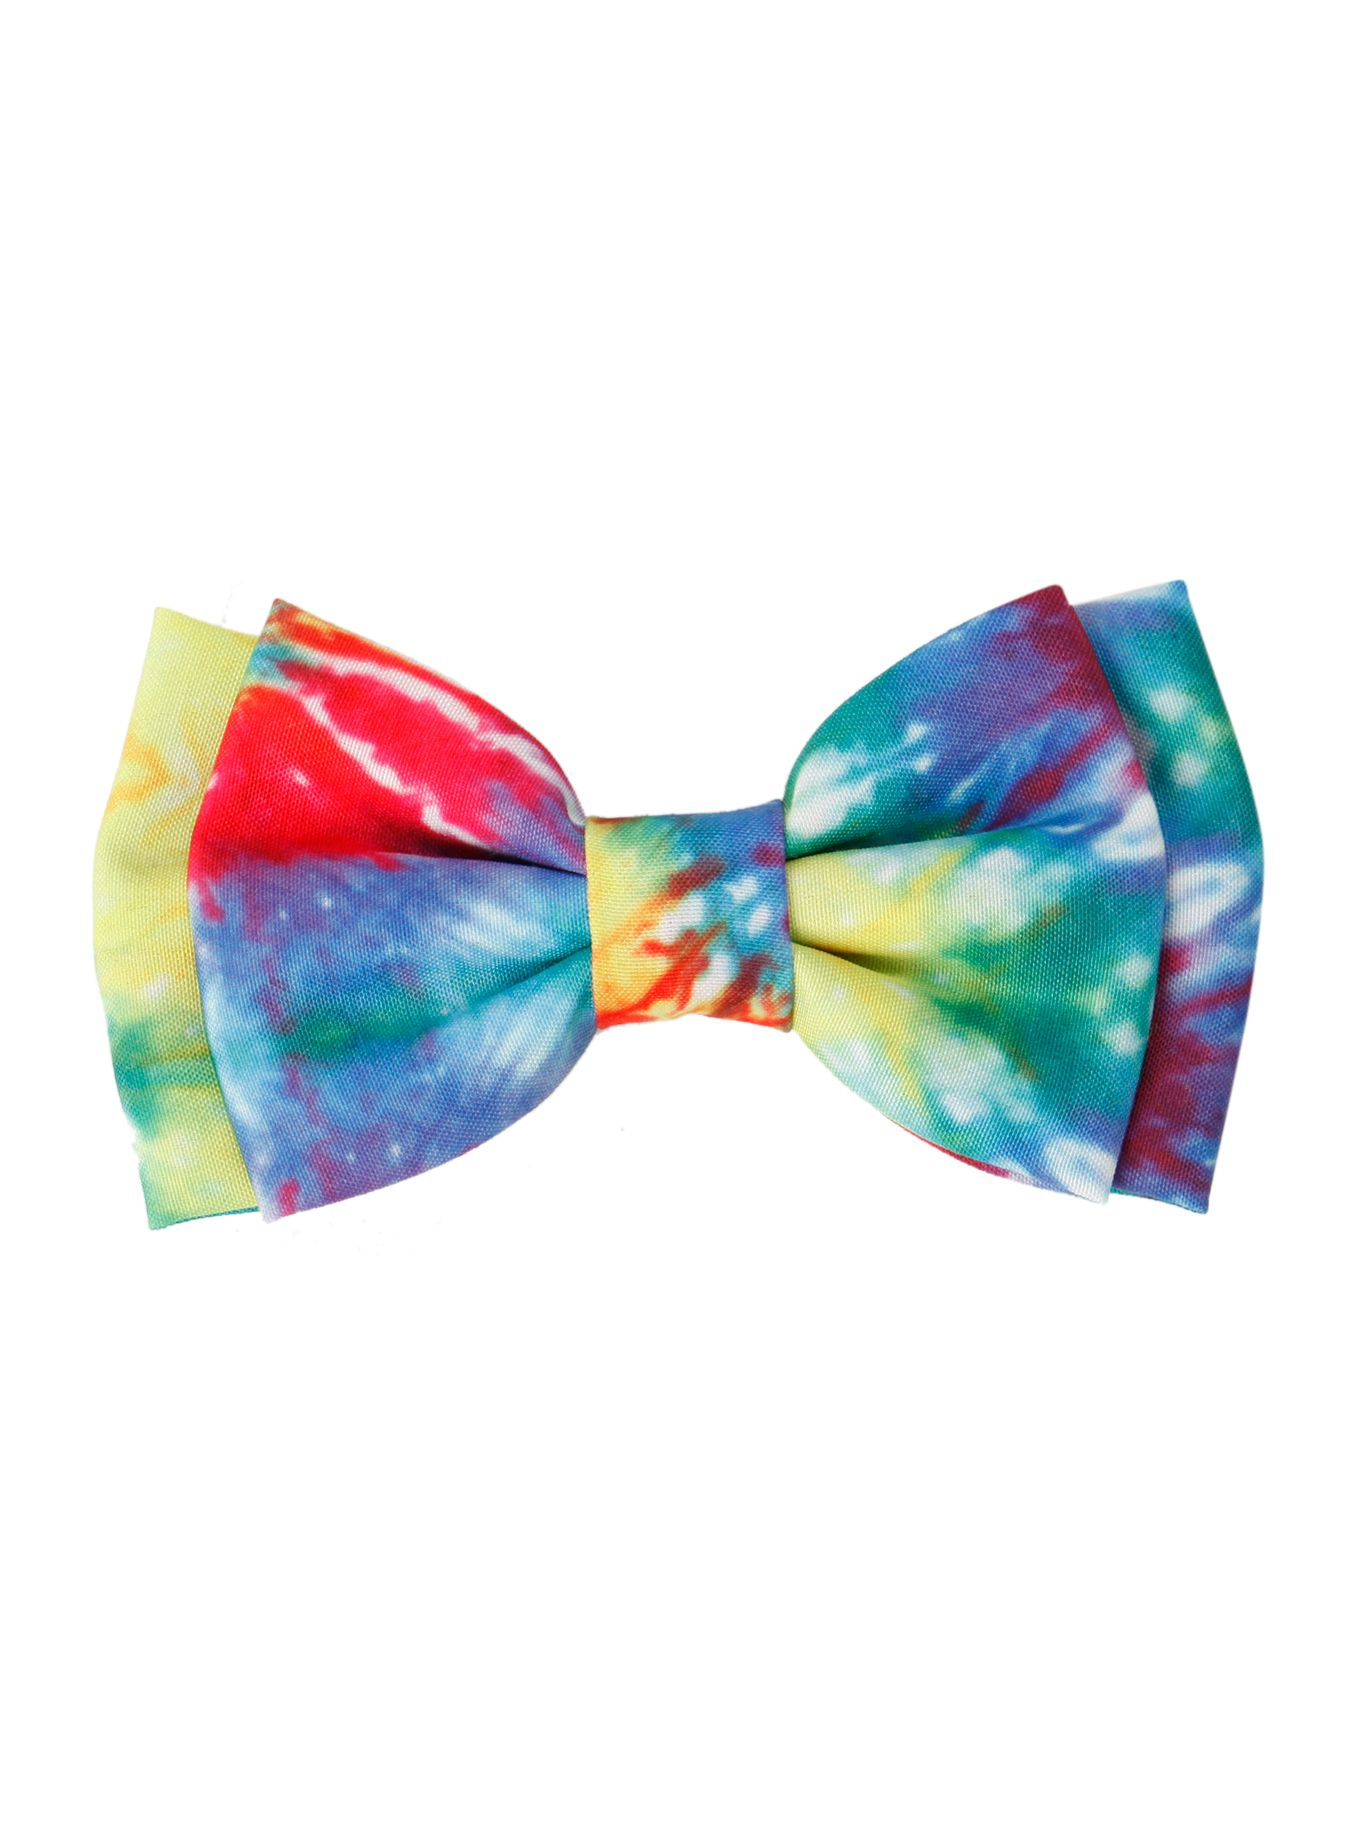 Tie Dye Hair Bow Hot Topic